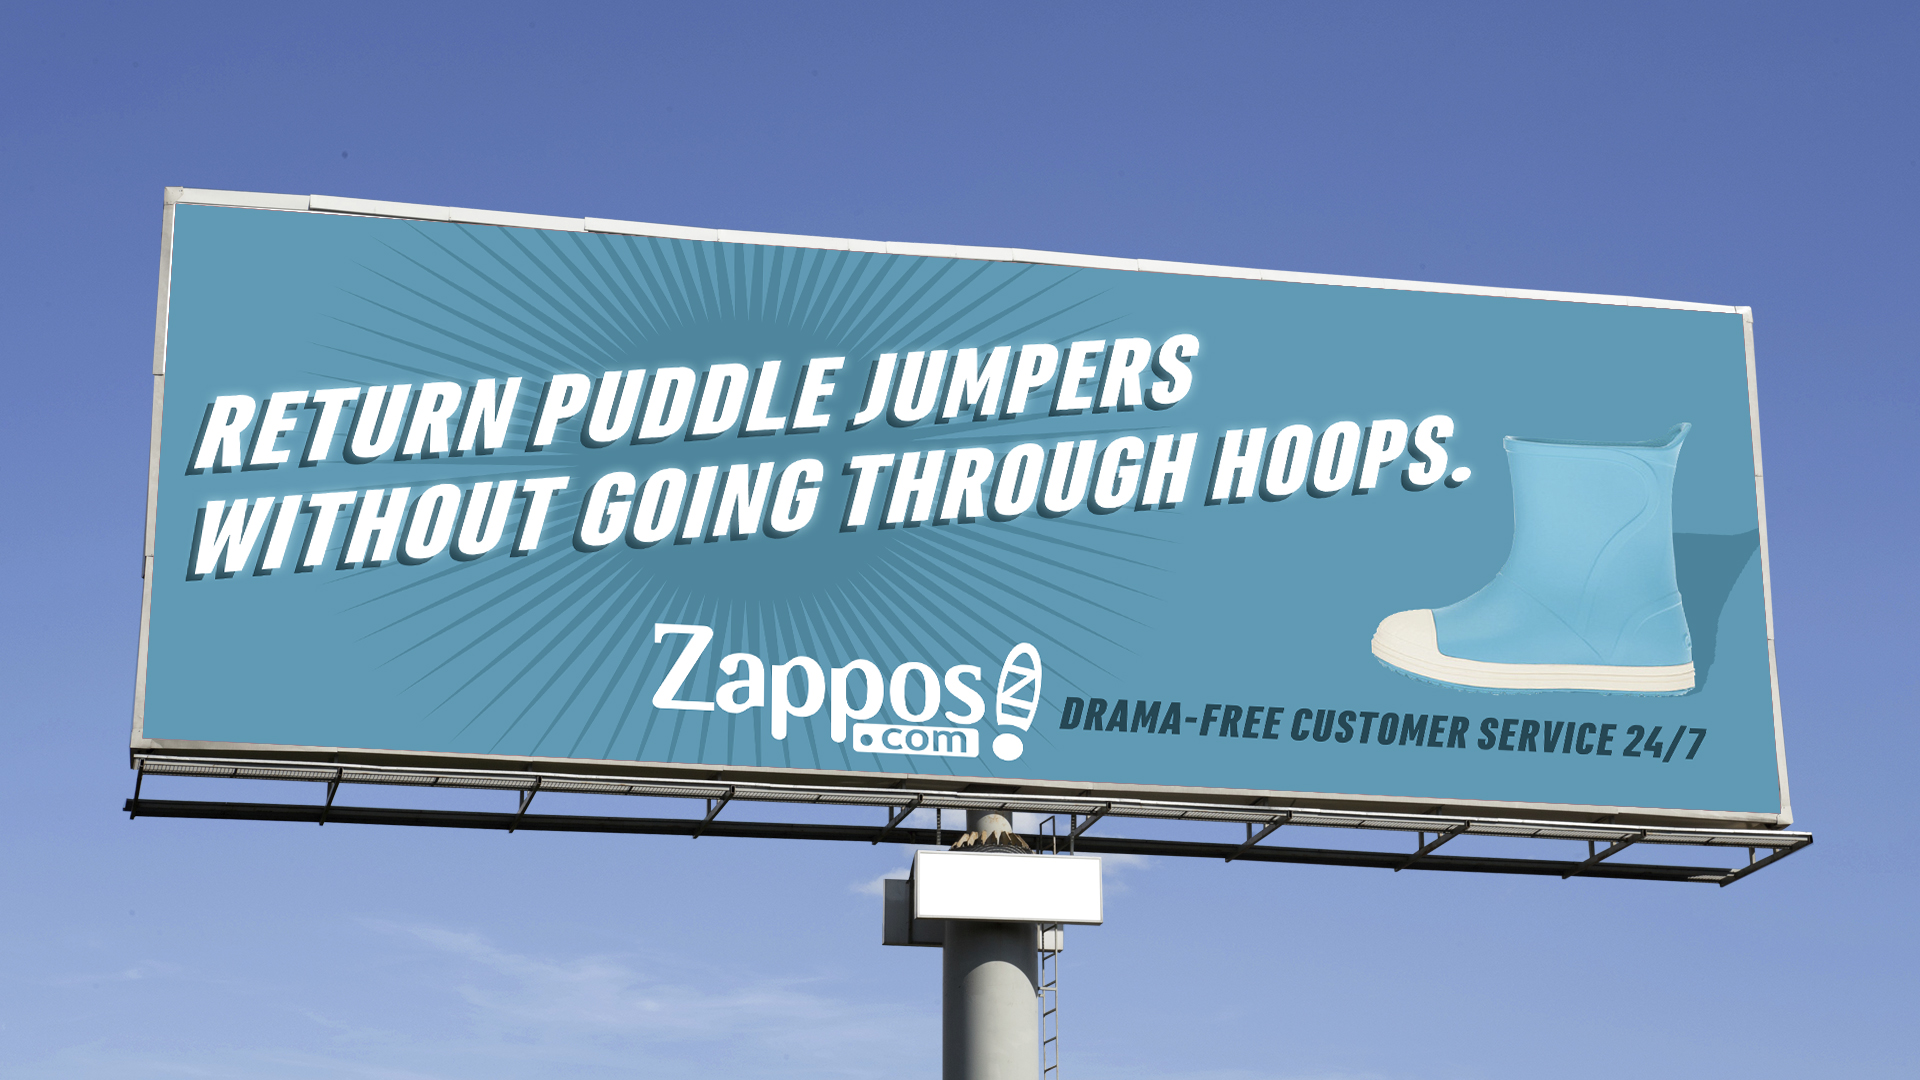 ZAPPOS_OOH_WORKWALL_0000_Puddle Jumper.jpg